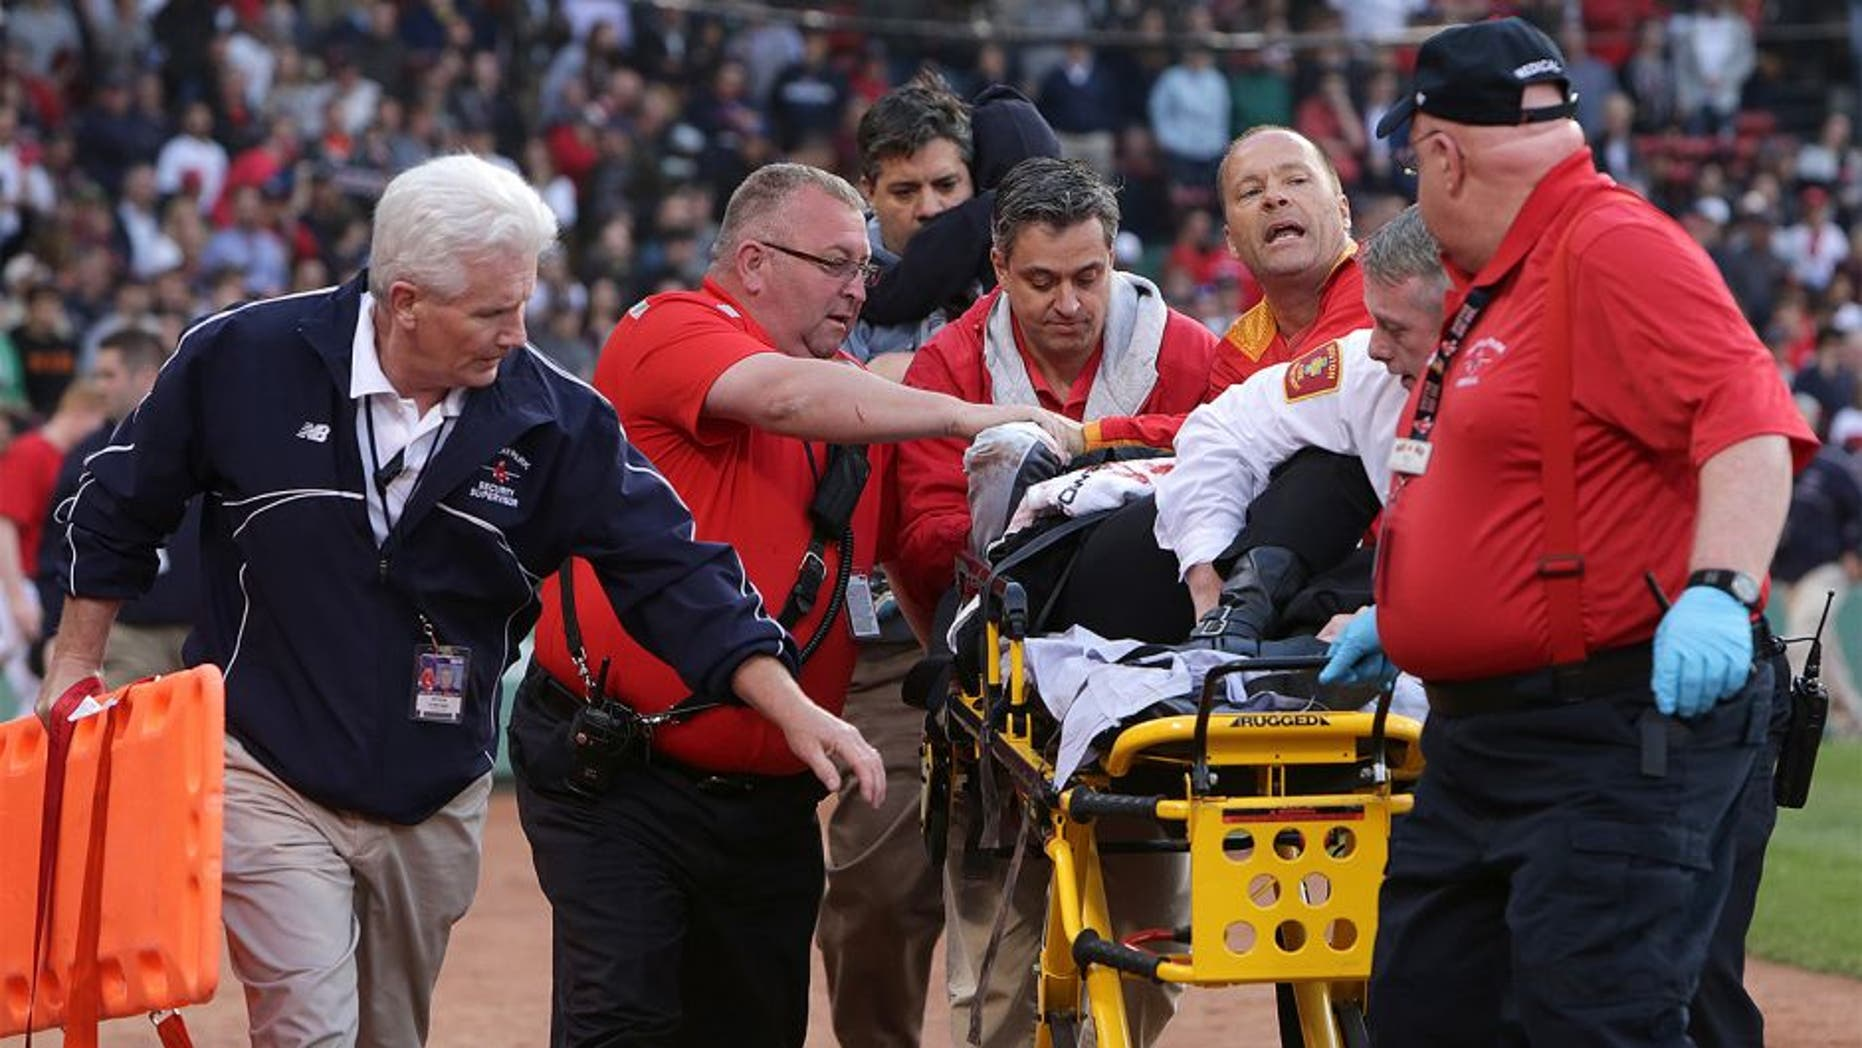 BOSTON - JUNE 5: Medical personnel remove a fan injured by a broken bat in the second inning. The Boston Red Sox take on the Oakland Athletics in Game 1 of a three game series at Fenway Park. (Photo by Barry Chin/The Boston Globe via Getty Images)